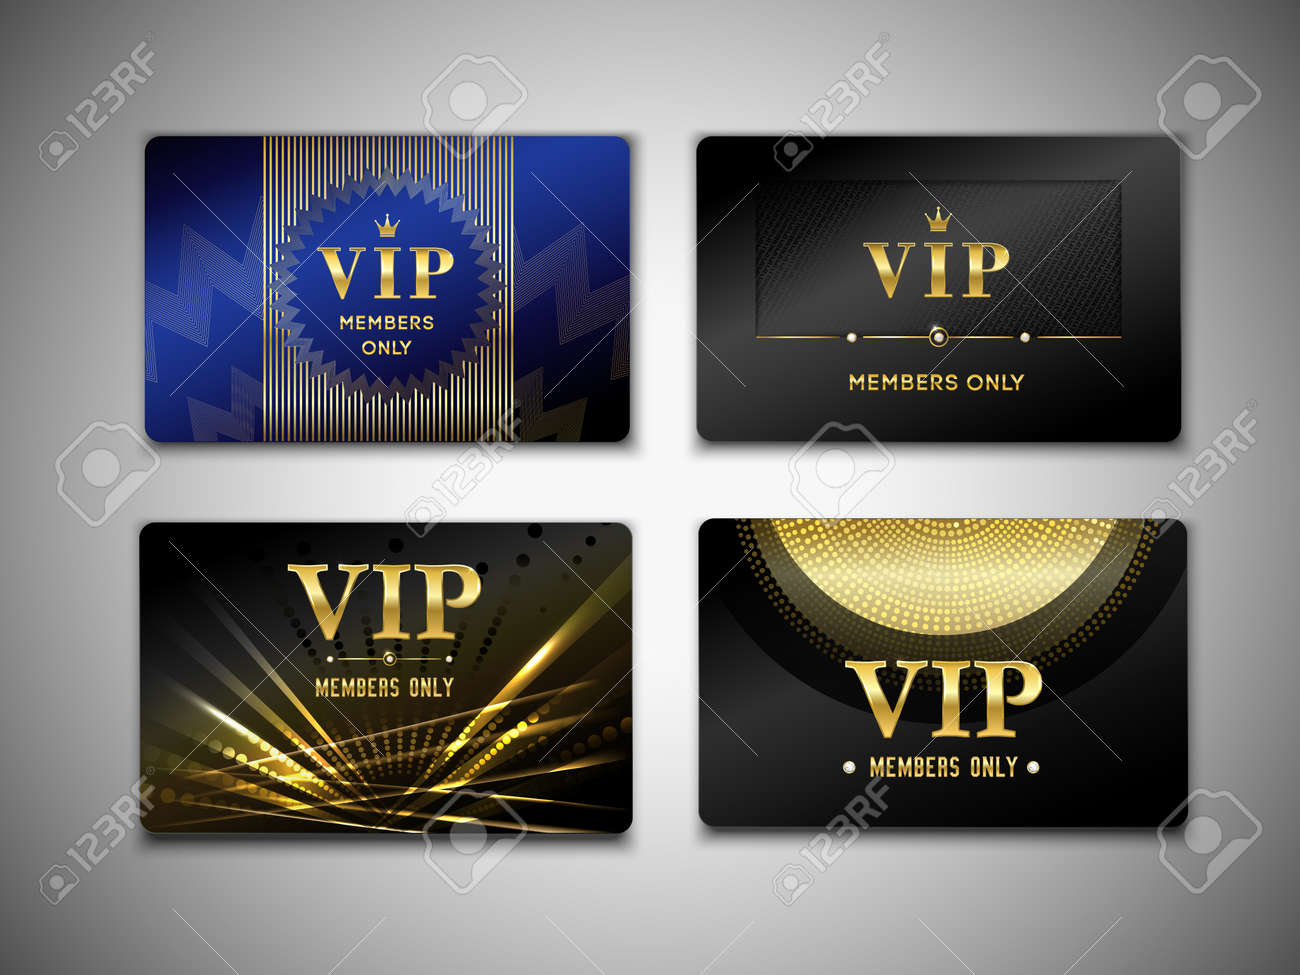 Vip cards design template on black background with inscription member only, golden geometric elements isolated vector illustration - 165884995